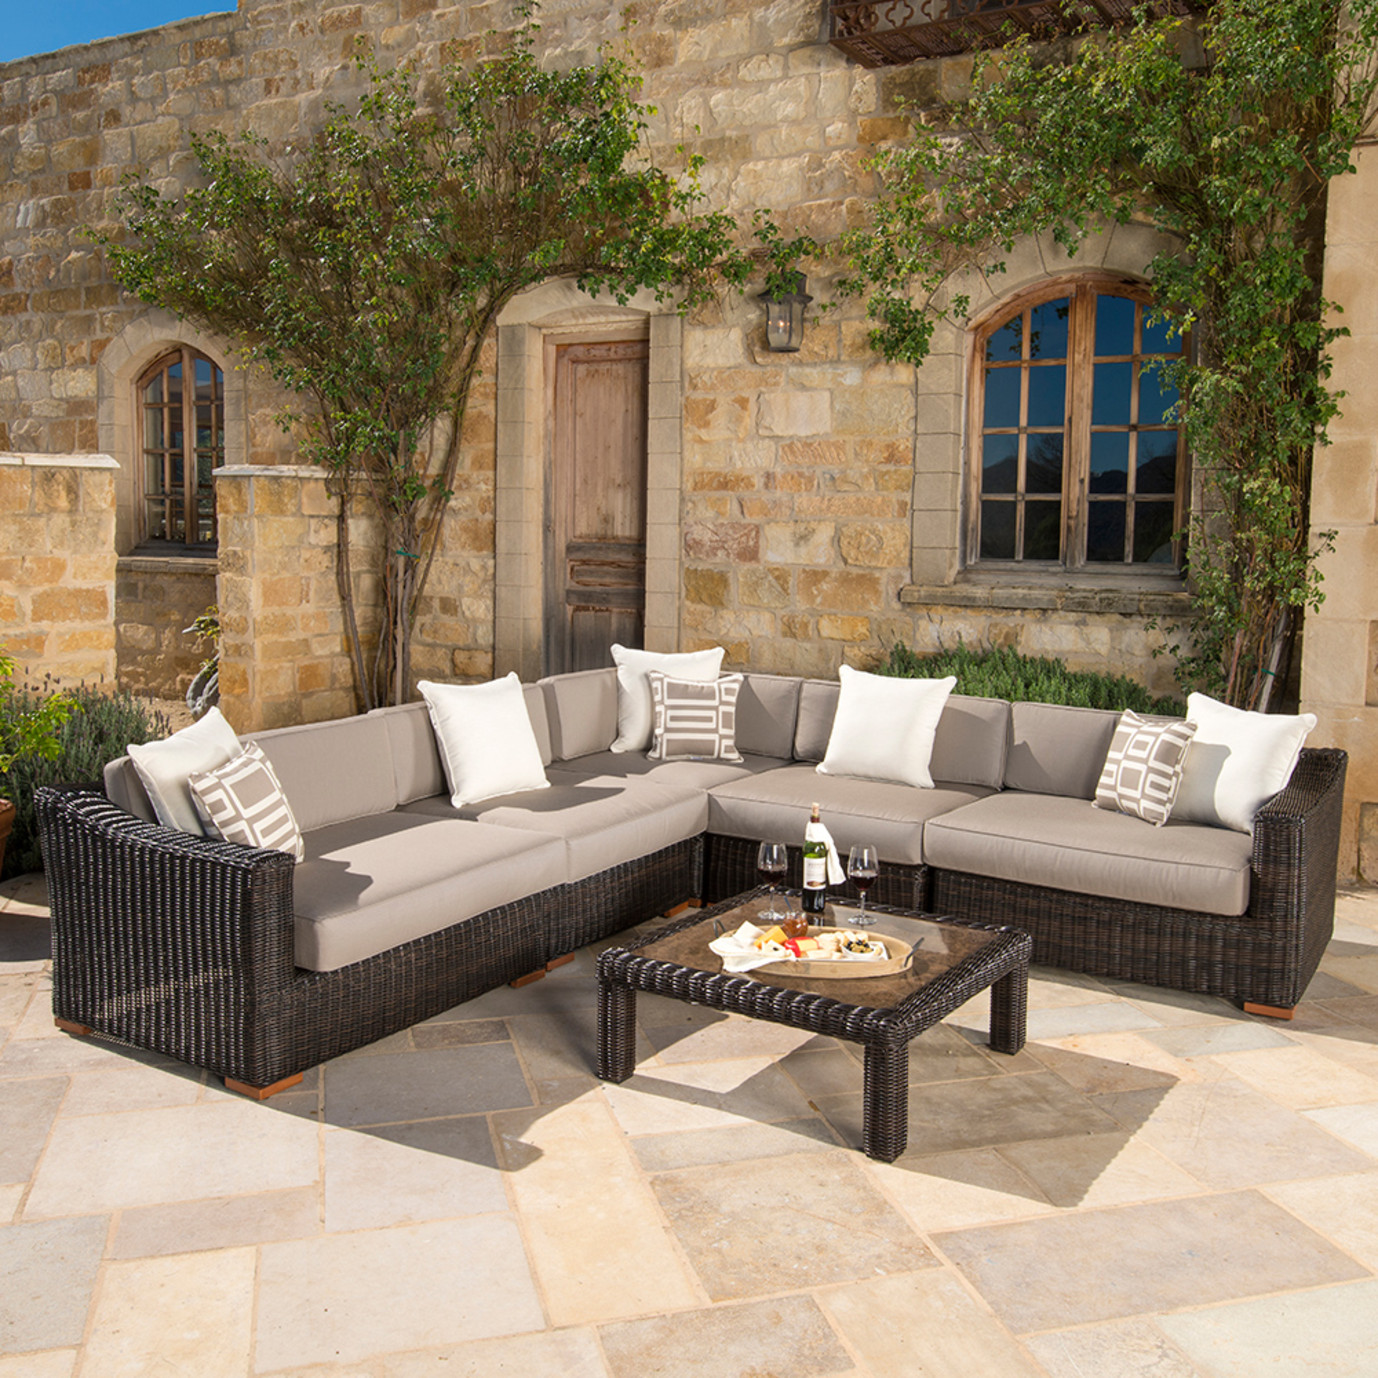 Resort™ Deluxe 6pc Sectional Set - Espresso/ Frank Stone